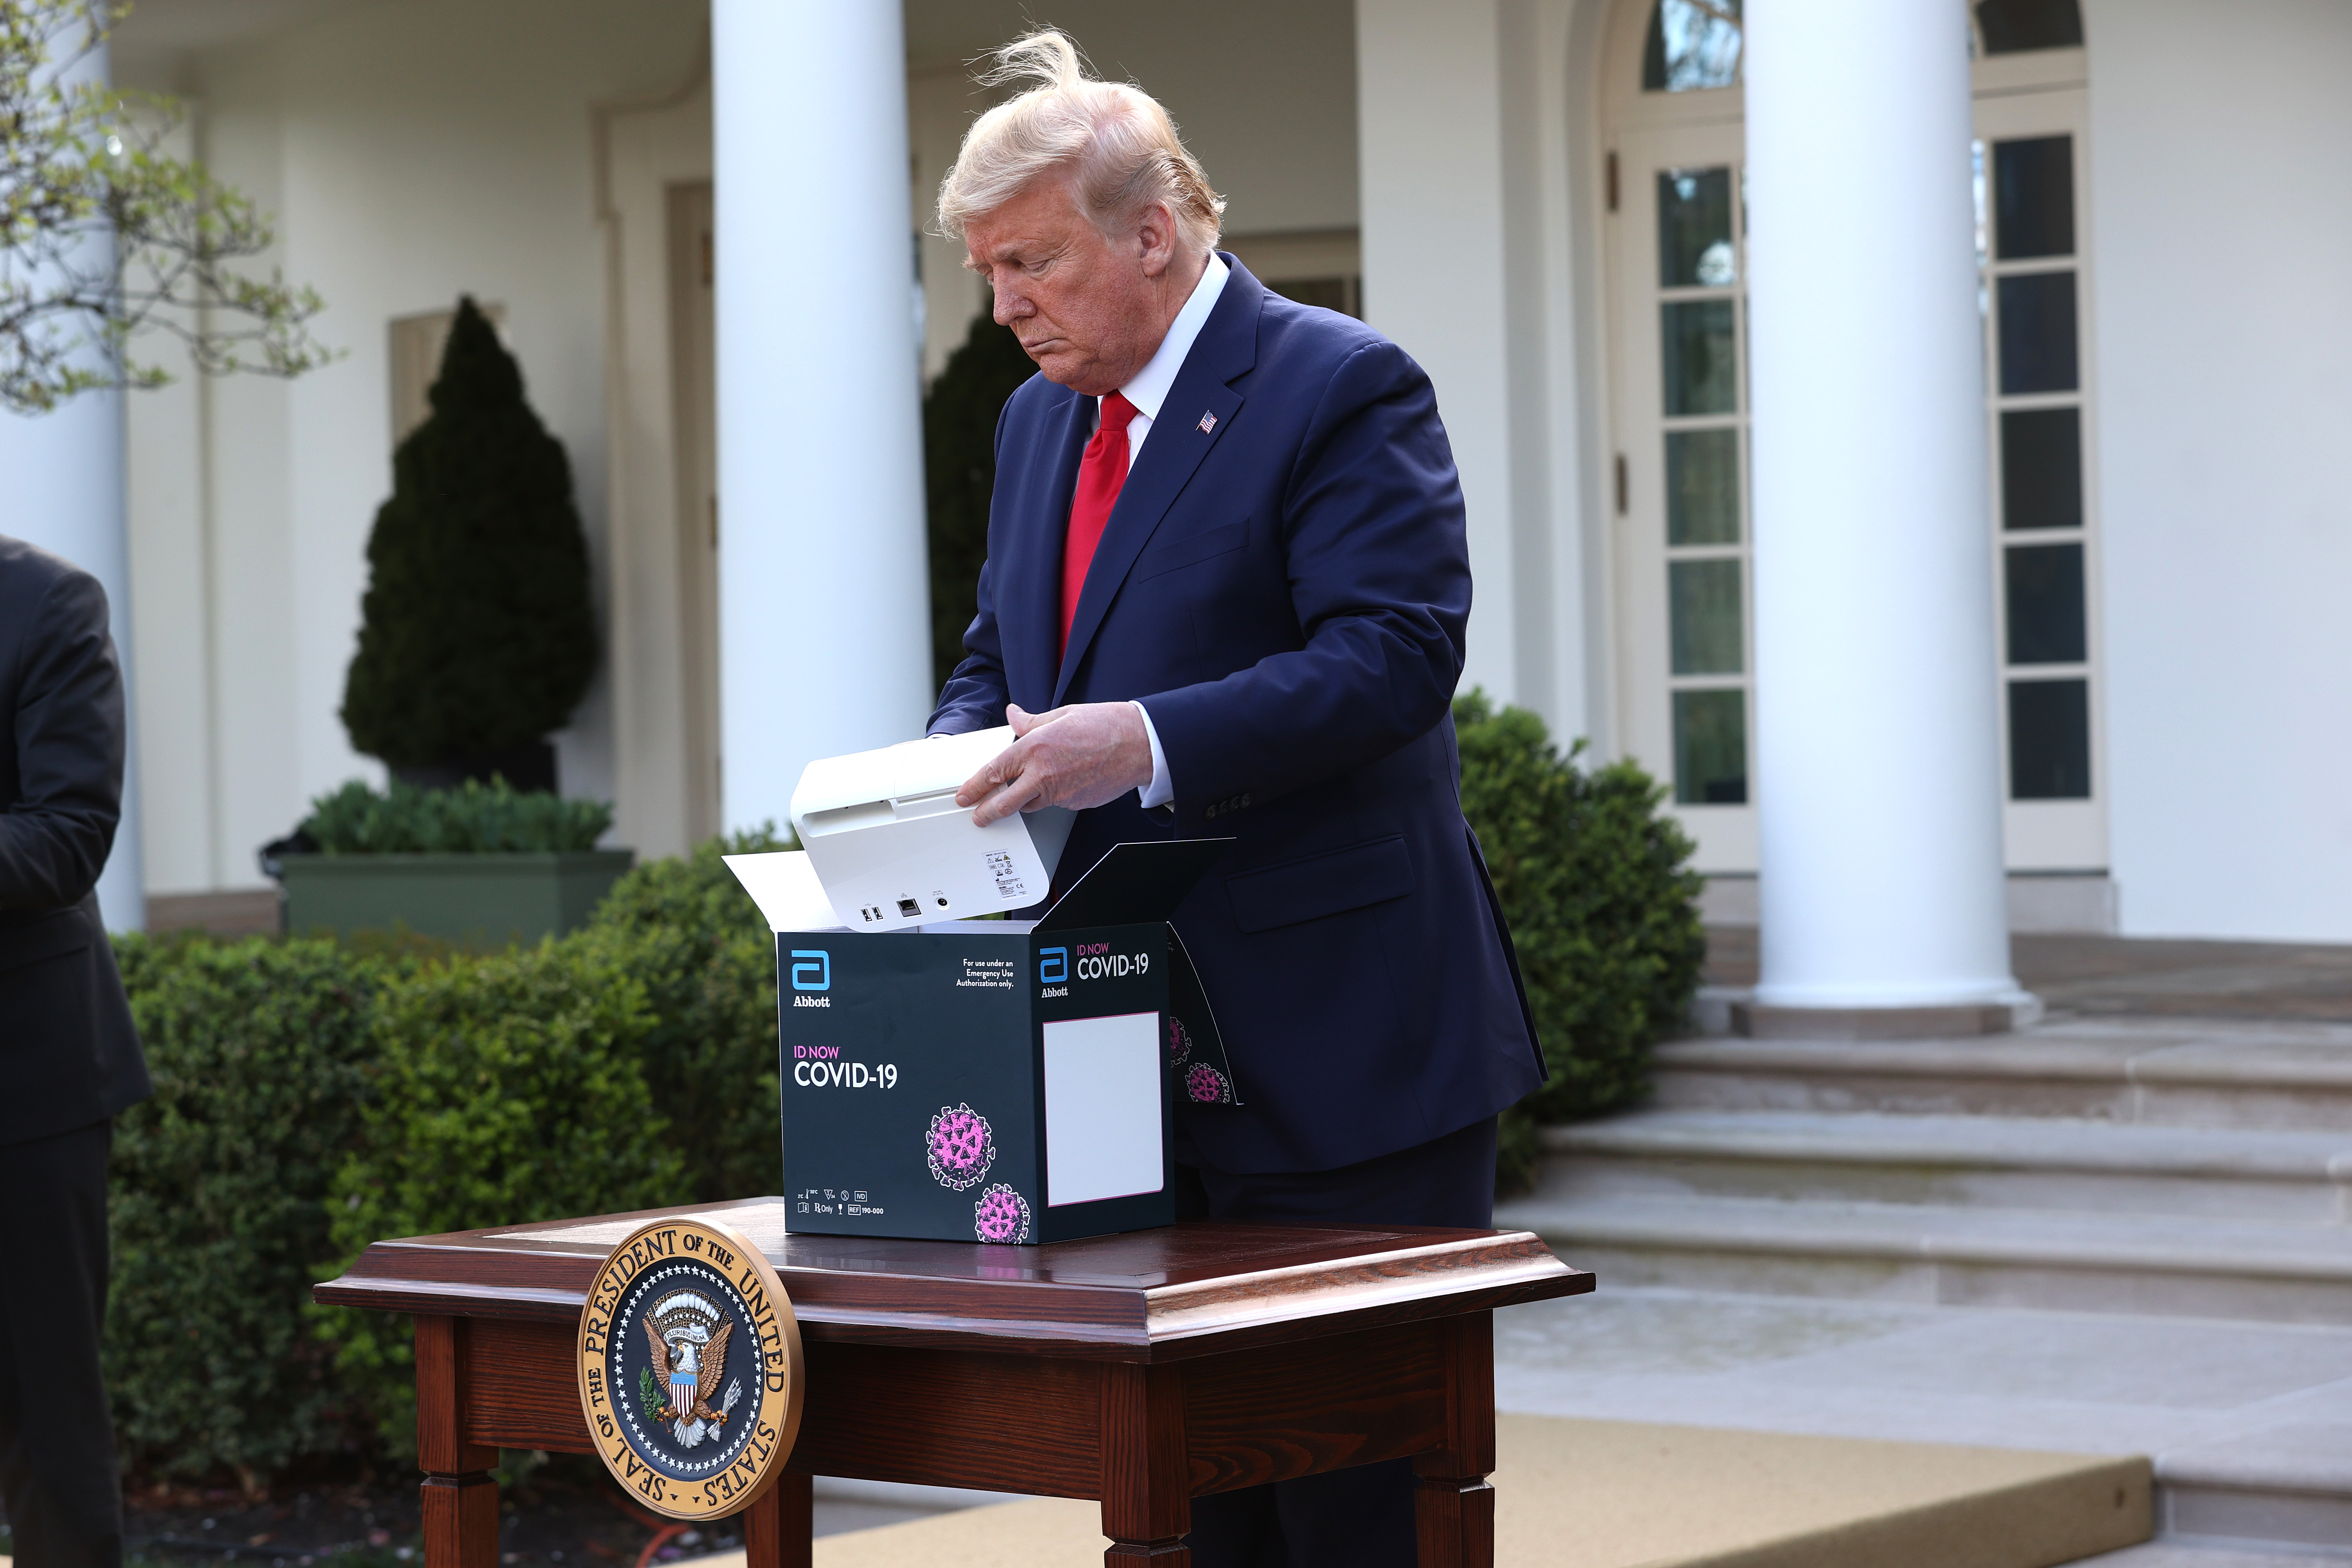 WASHINGTON, DC - MARCH 30: U.S. President Donald Trump takes a new COVID-19 test kit developed by Abbott Labs out of its box during the daily coronavirus briefing at the Rose Garden of the White House on March 30, 2020 in Washington, DC. The United States has updated its guidelines to U.S. citizens to maintain current social distancing practices through the end of April after the number of reported coronavirus (COVID-19) deaths doubled to over 2,000 nationwide within two days. (Photo by Win McNamee/Getty Images)